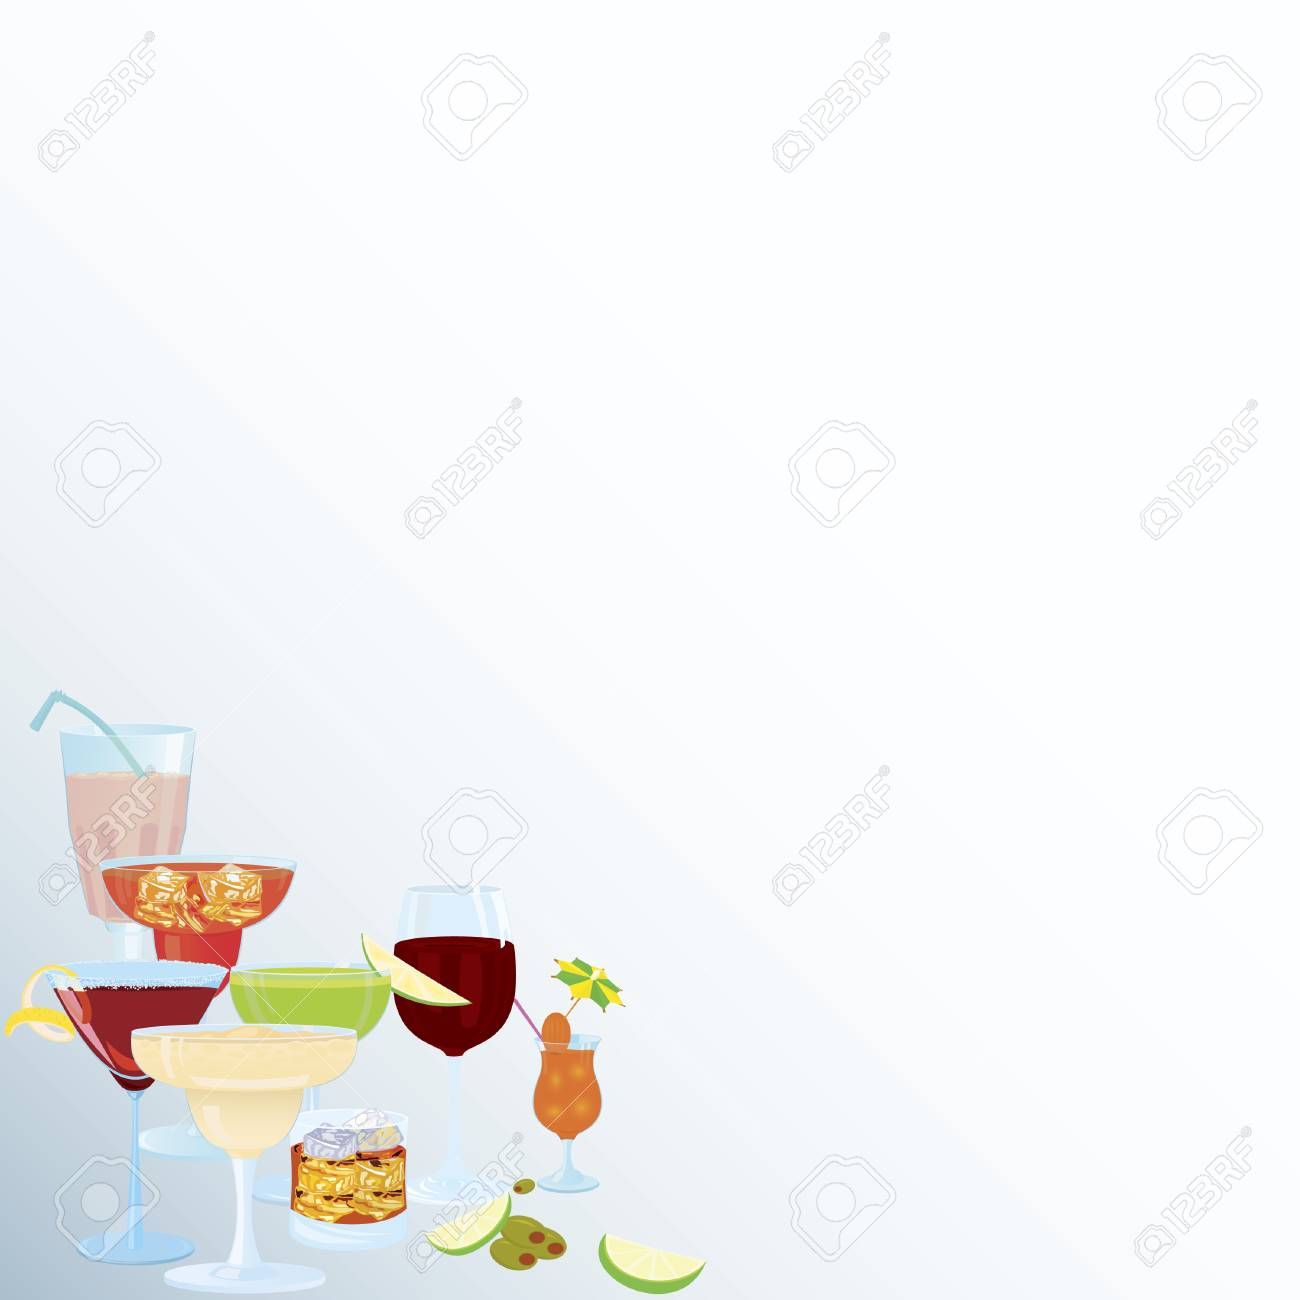 Vector illustration of cocktail corner decoration element Stock Vector - 12481254